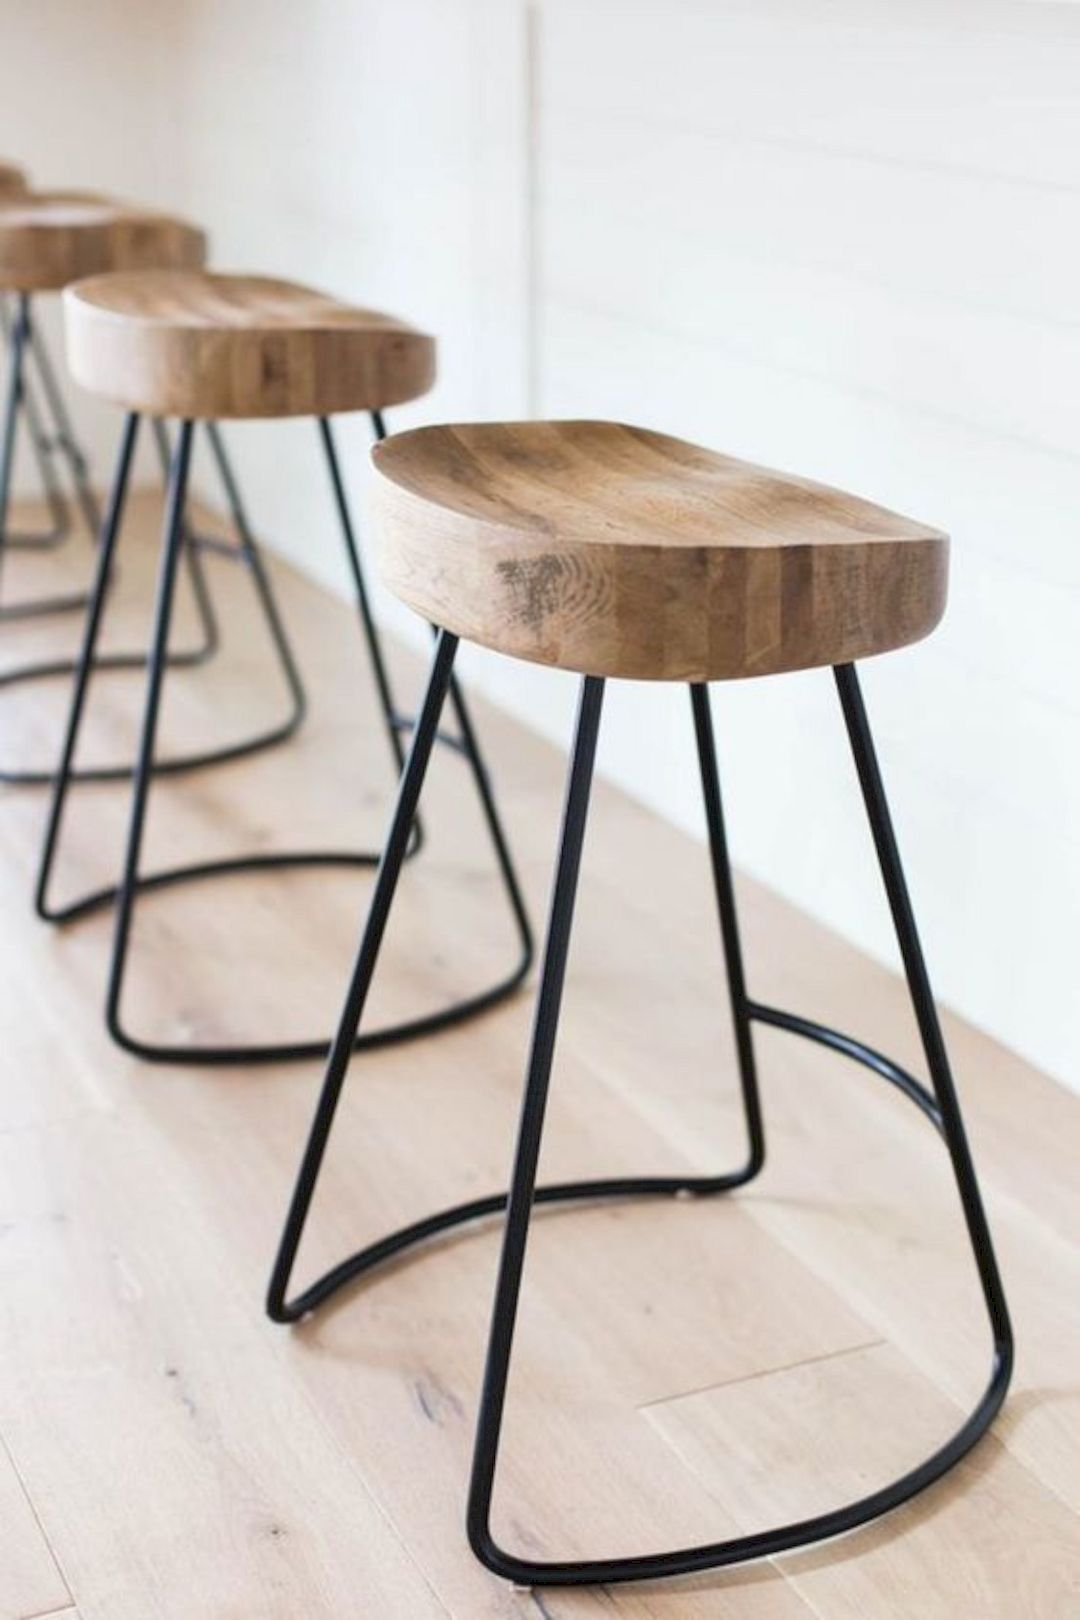 Ovini Balance Stool A Cool Stool For Your Healthy Sitting From Yanko Design Kitchen Bar Stools Designer Bar Stools Wooden Bar Stools